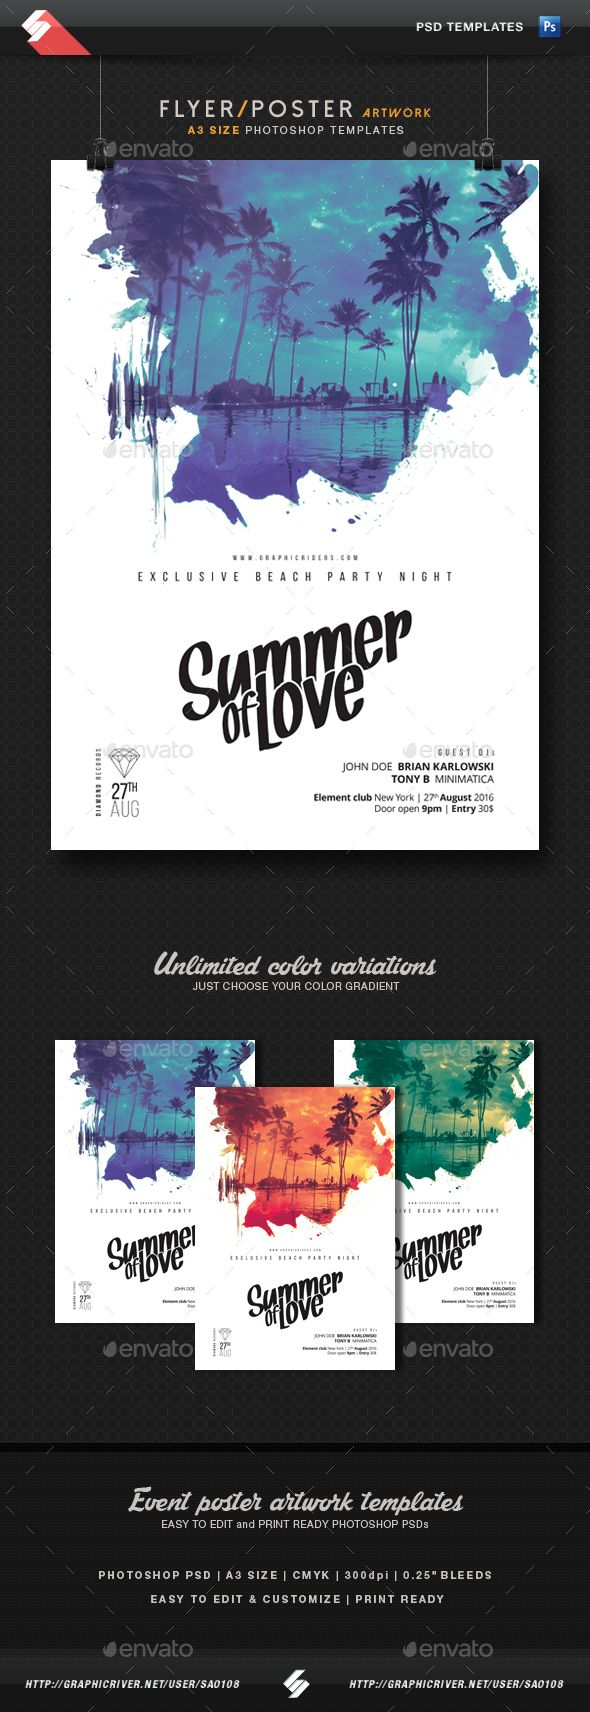 Poster 60 x 80 design - Poster 60 X 80 Design Psd Summer Of Love Party Flyer Poster Template A3 Only Download